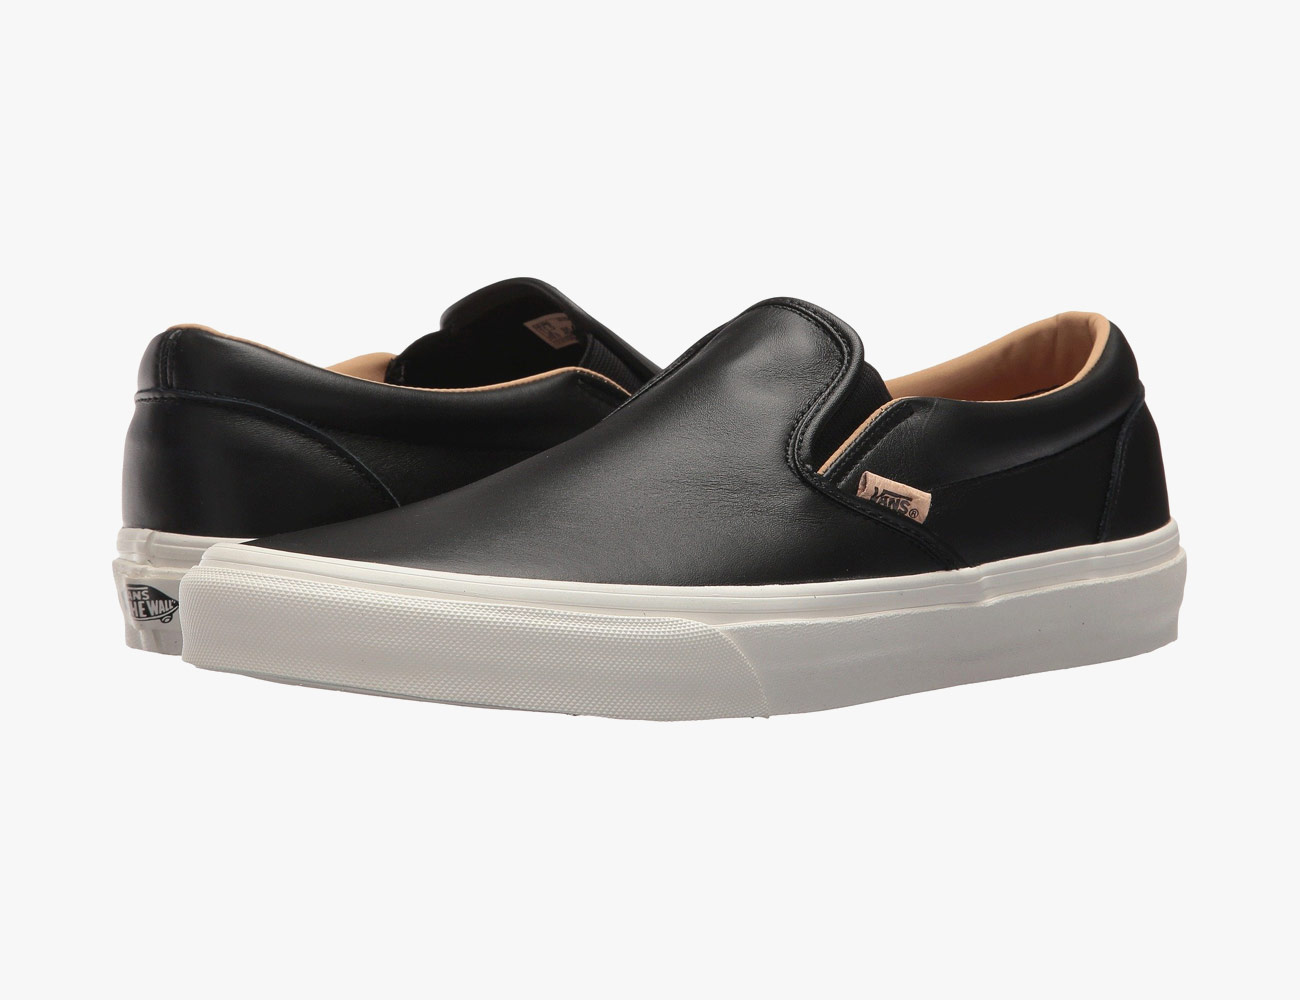 Slip-On Shoes to Slip Through Airport